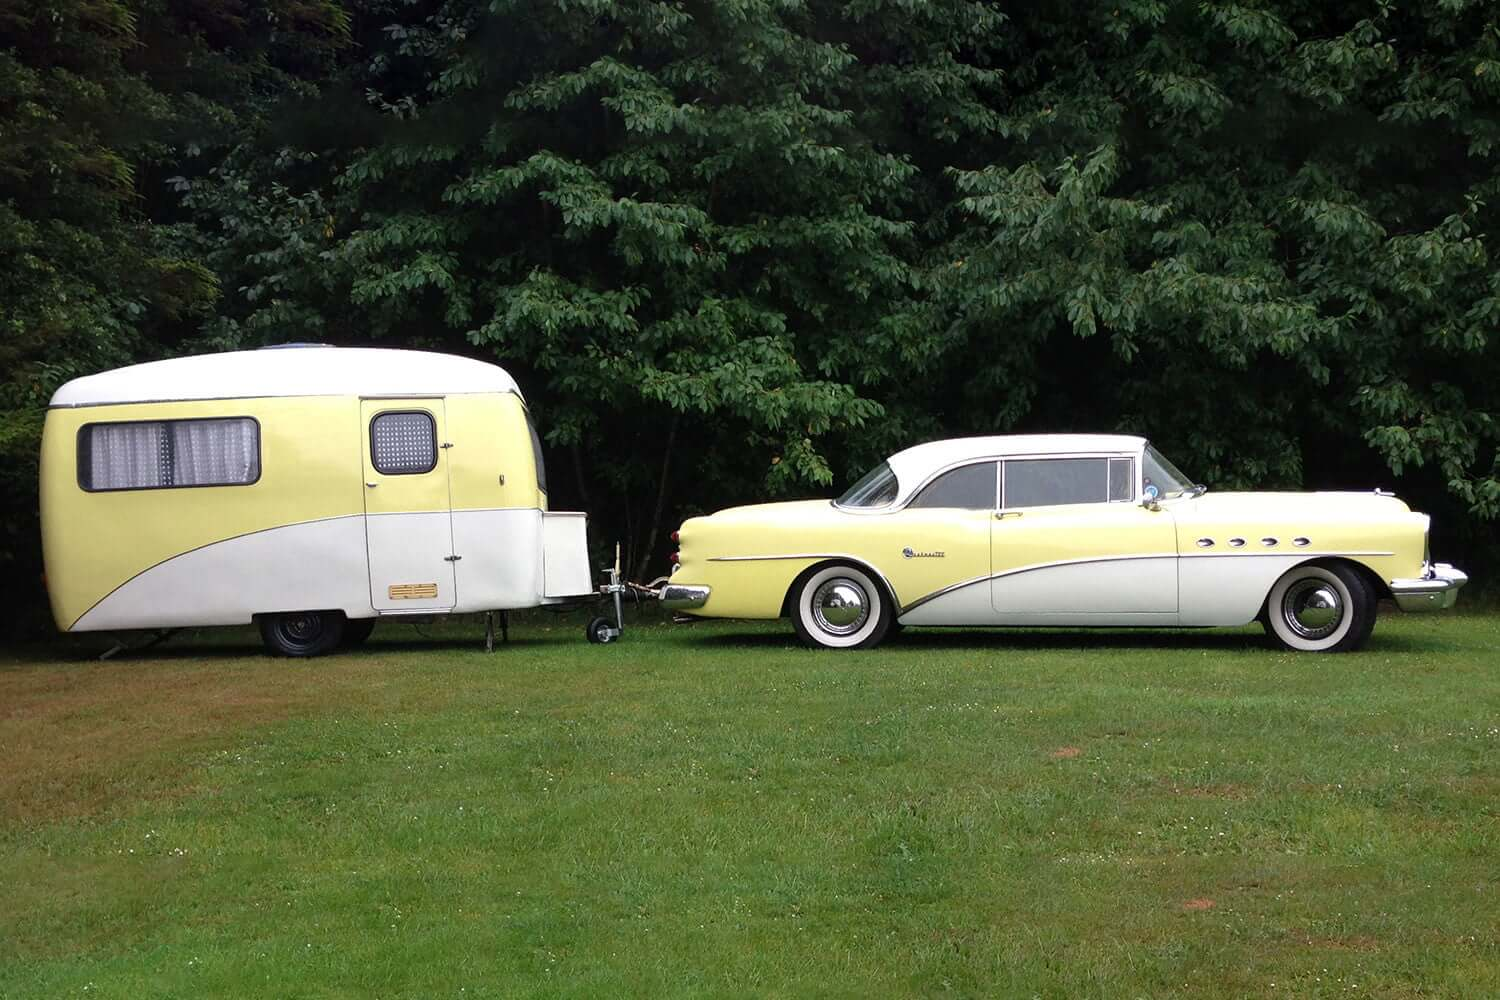 Vintage Trailers Popular Trend Among All Generations  Roaming Times